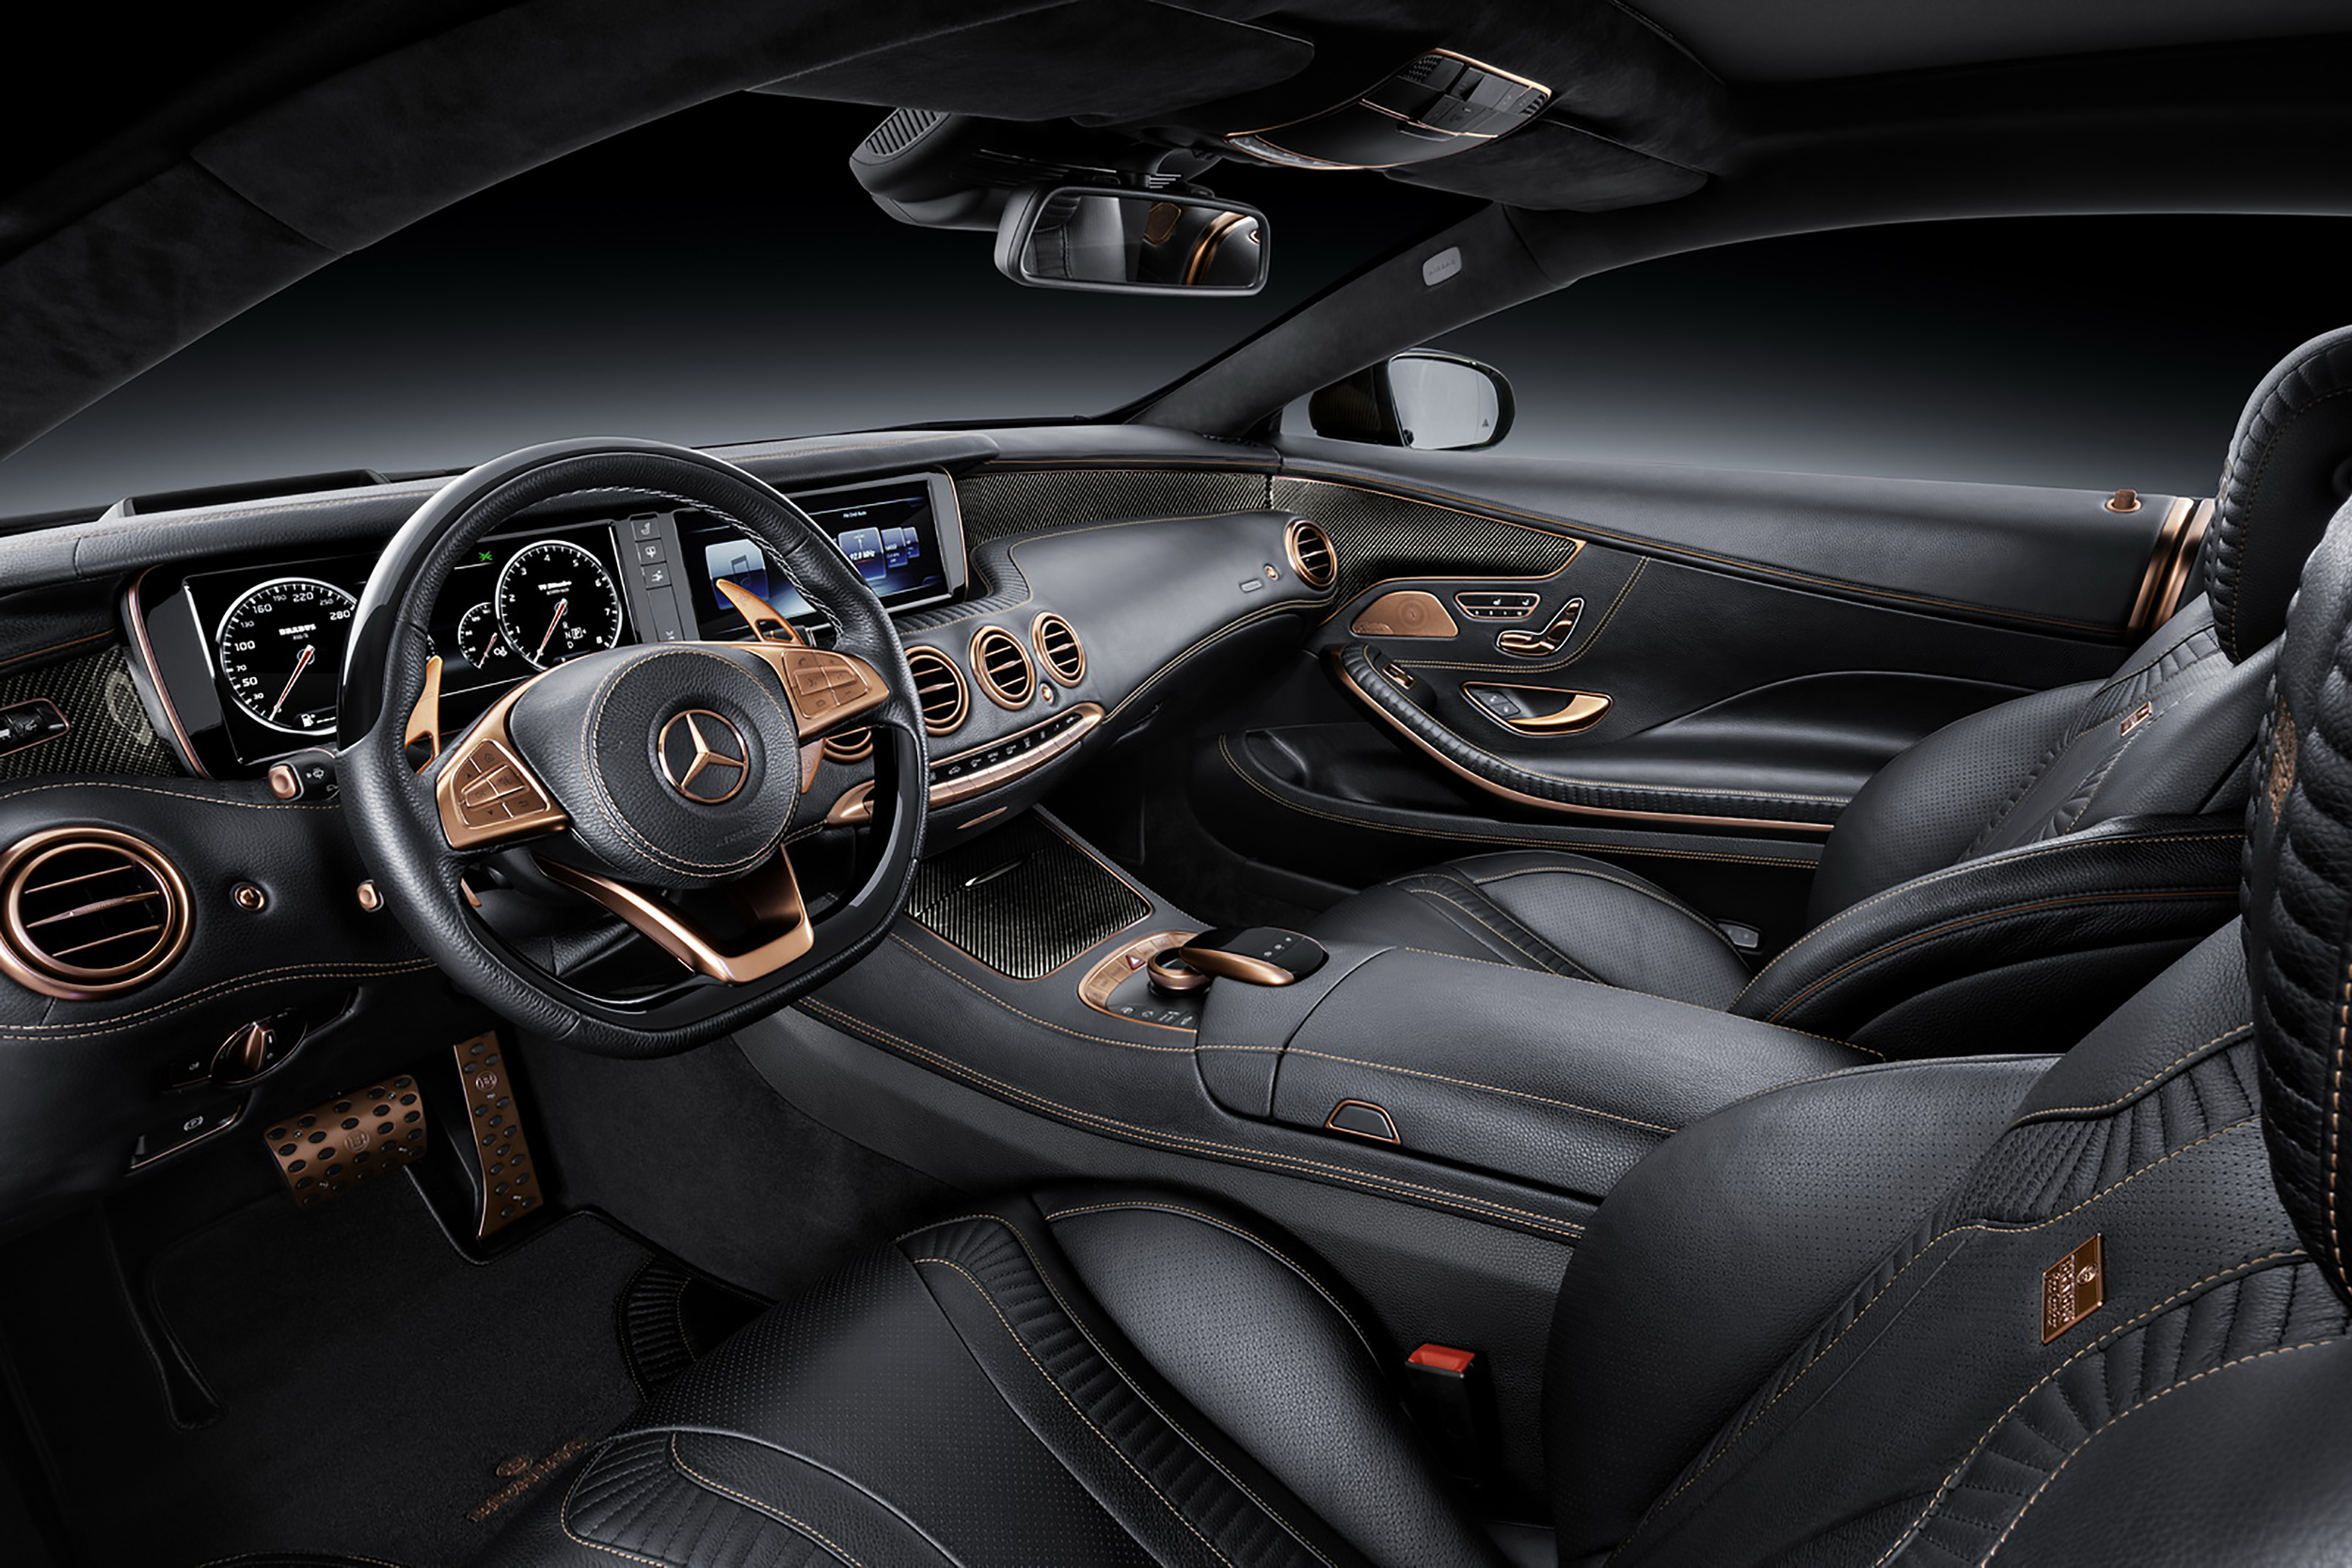 ' ' from the web at 'http://www.blogcdn.com/slideshows/images/slides/335/950/7/S3359507/slug/l/brabus-s-class-coupe-27-1.jpg'